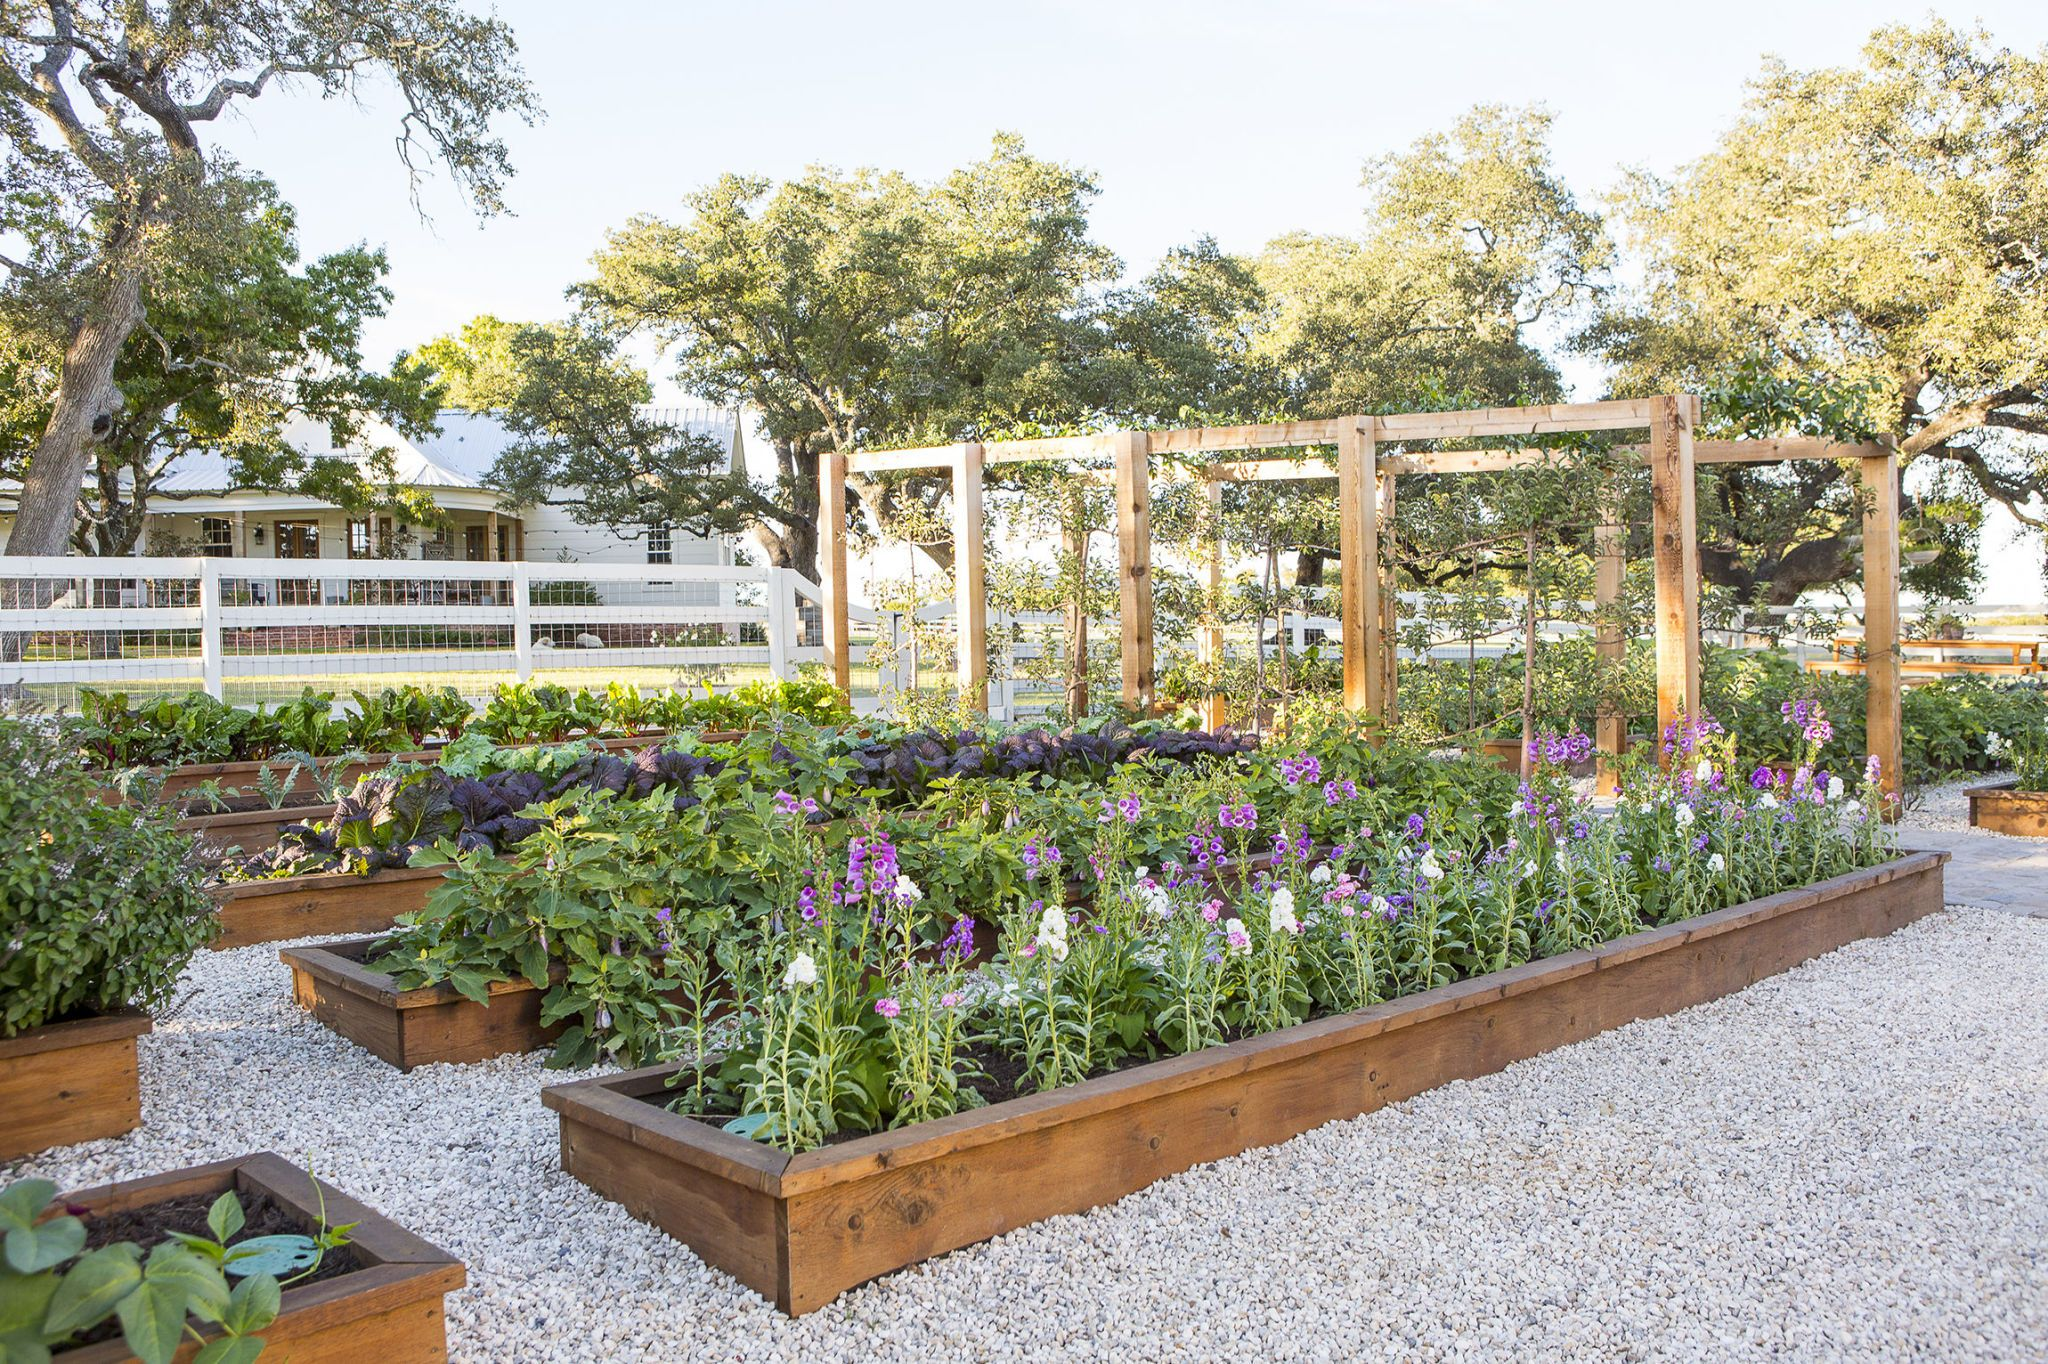 Chip Joanna Gaines Family Garden Project